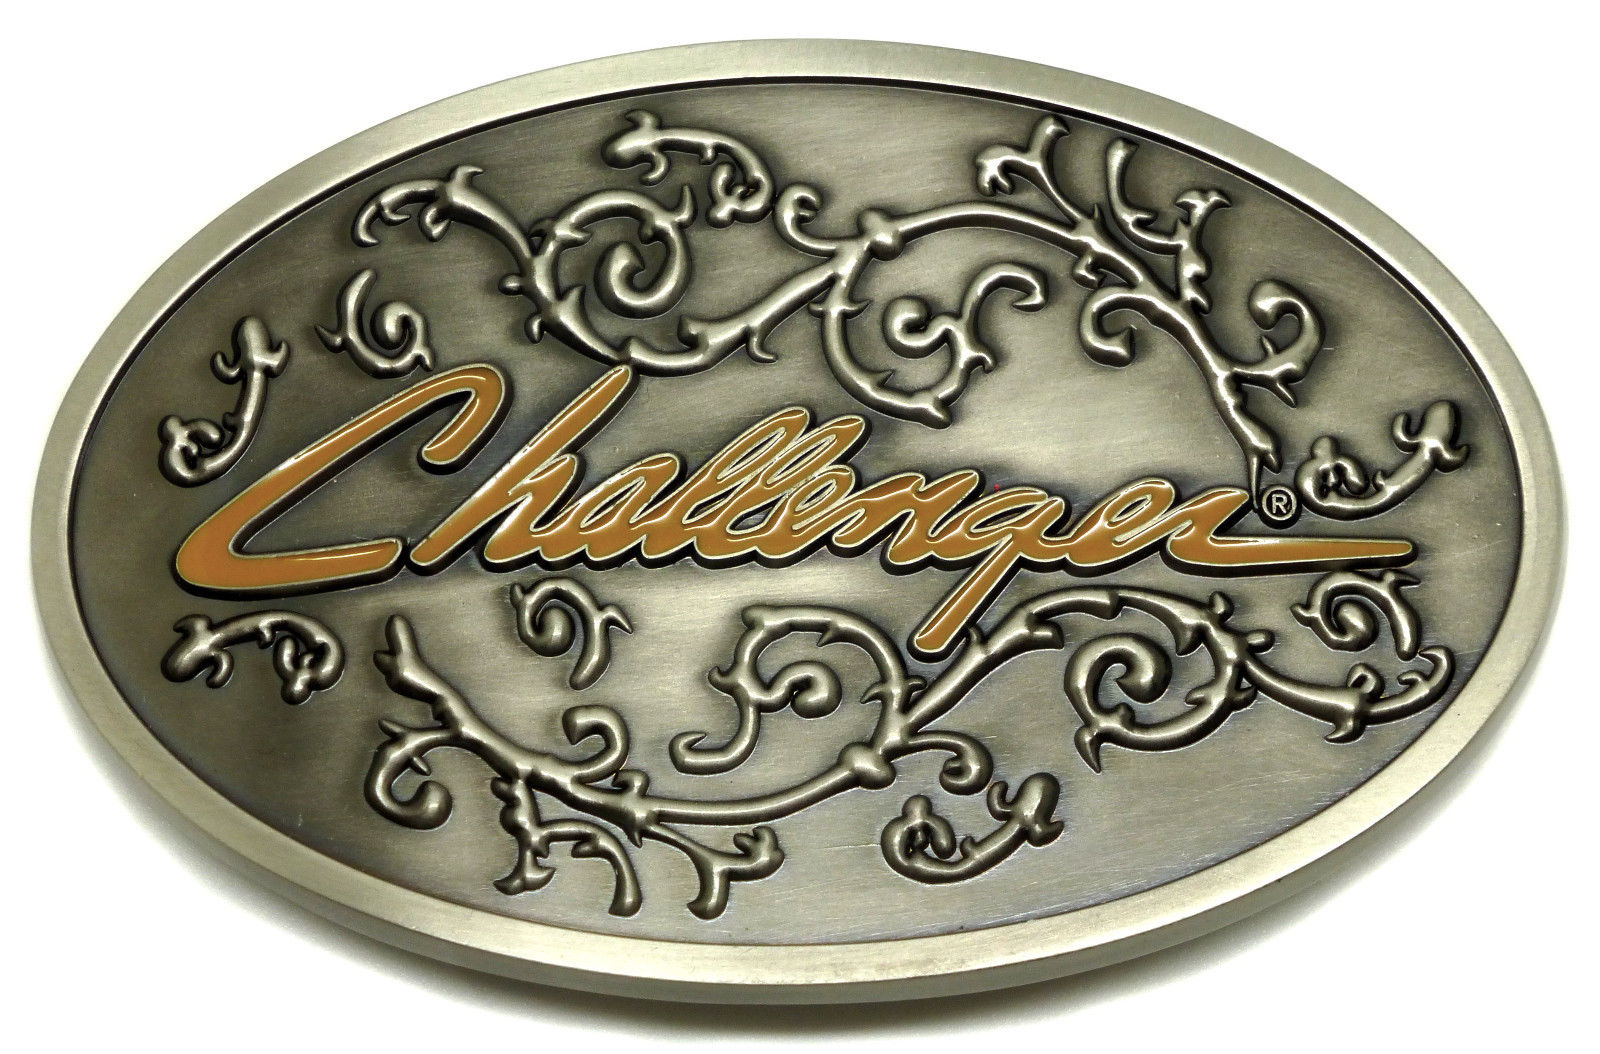 Challenger Belt Buckle Officially Licensed